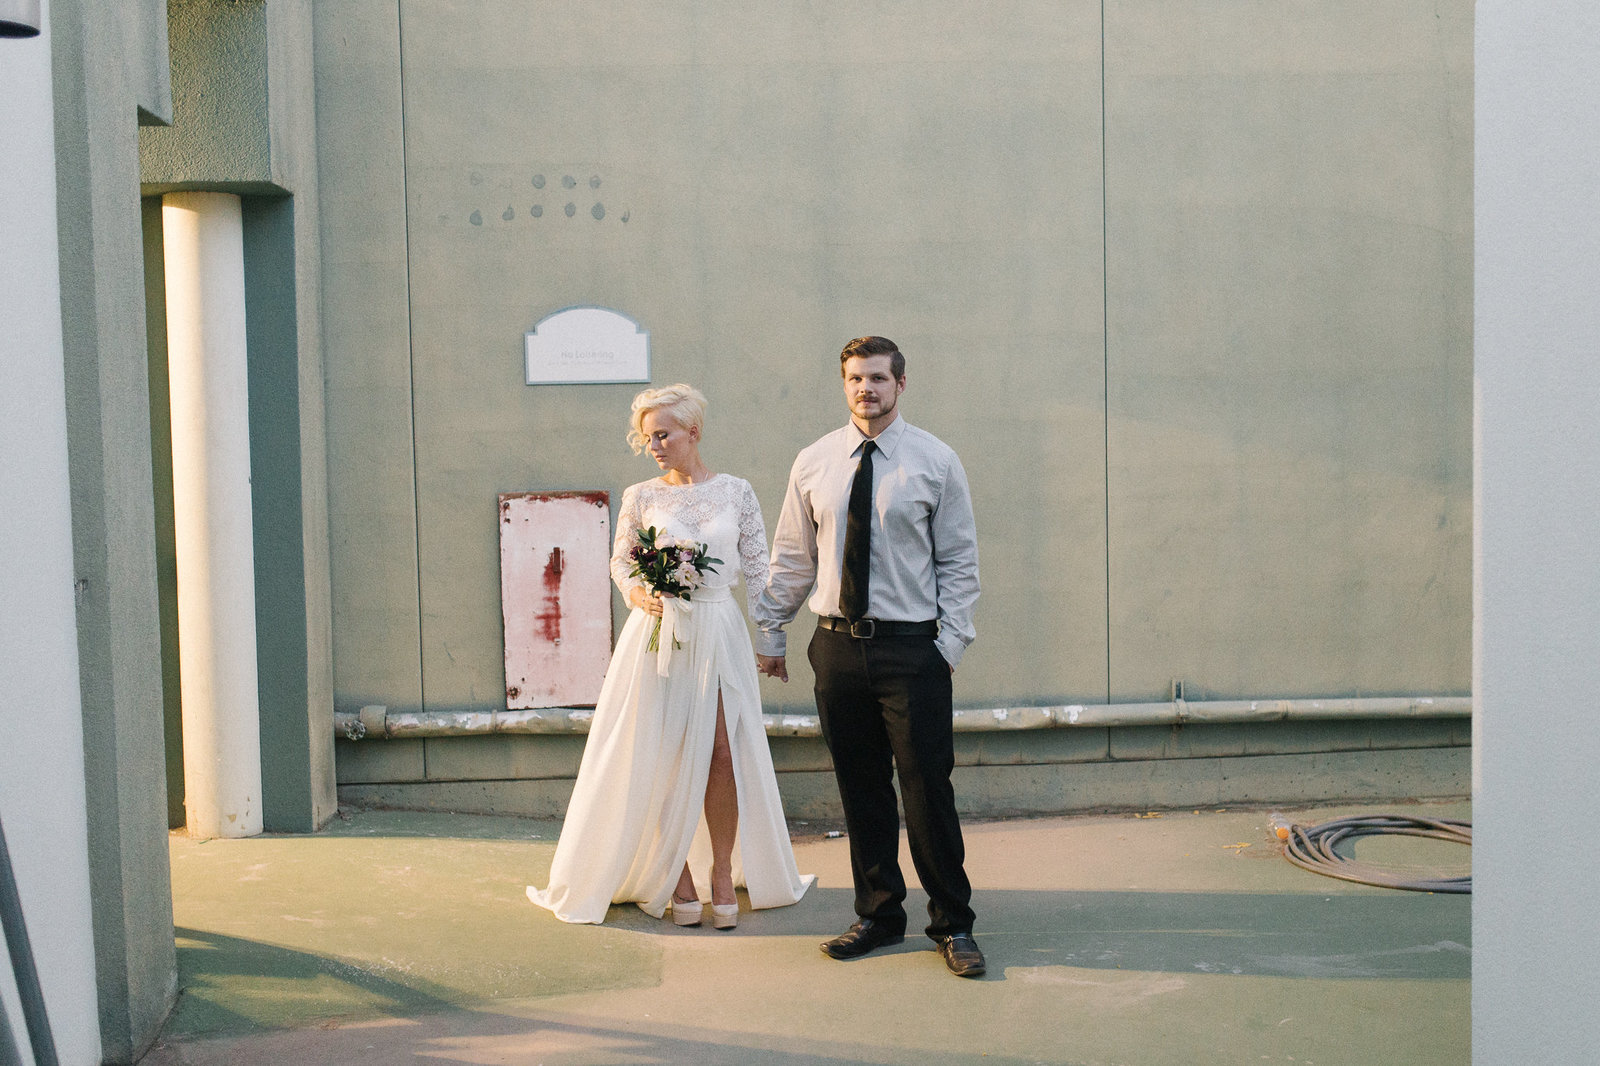 Bride and Groom embrace after ceremony during golden hour in modern elopement in Phoenix, Arizona